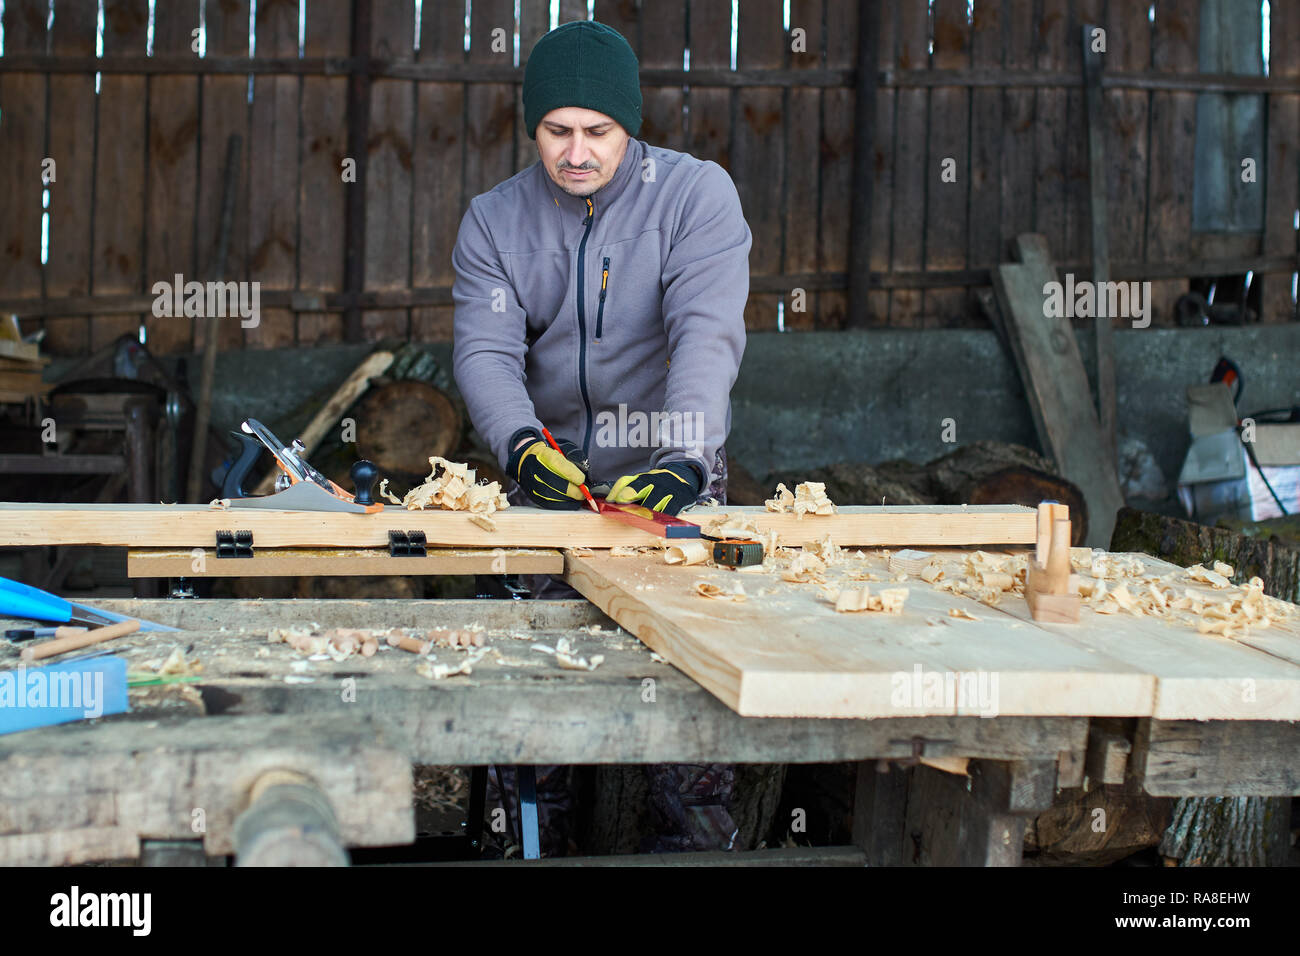 Woodworker measuring and drawing lines on his cabinet project - Stock Image